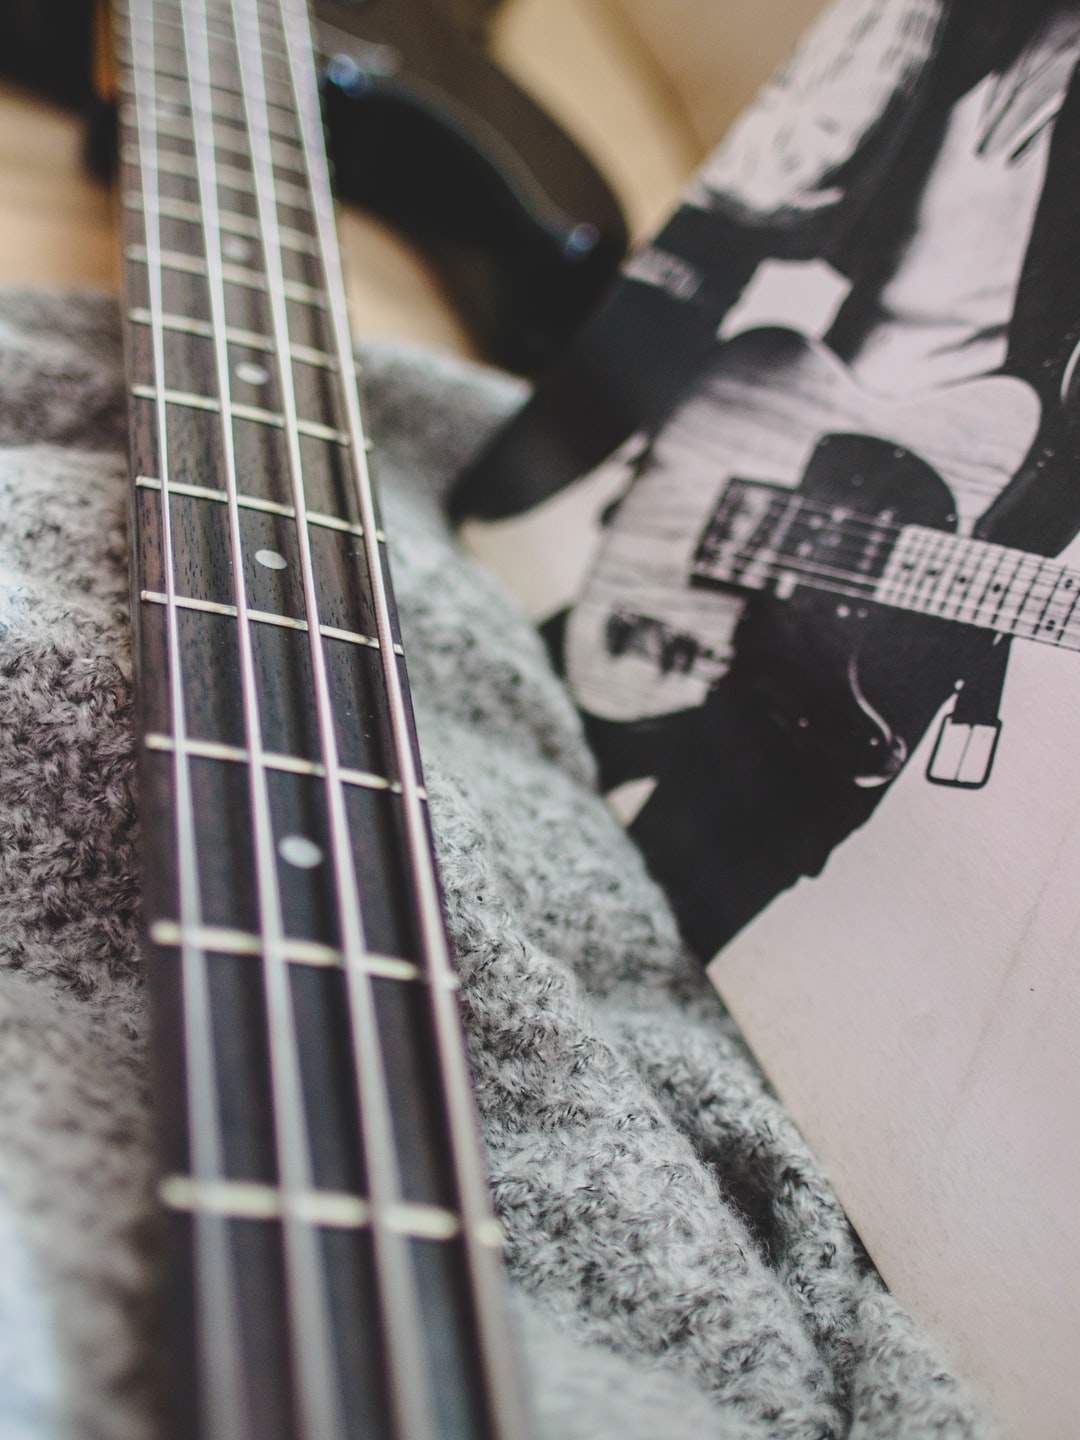 Black Bass Guitar Photo Free Guitar Image On Unsplash